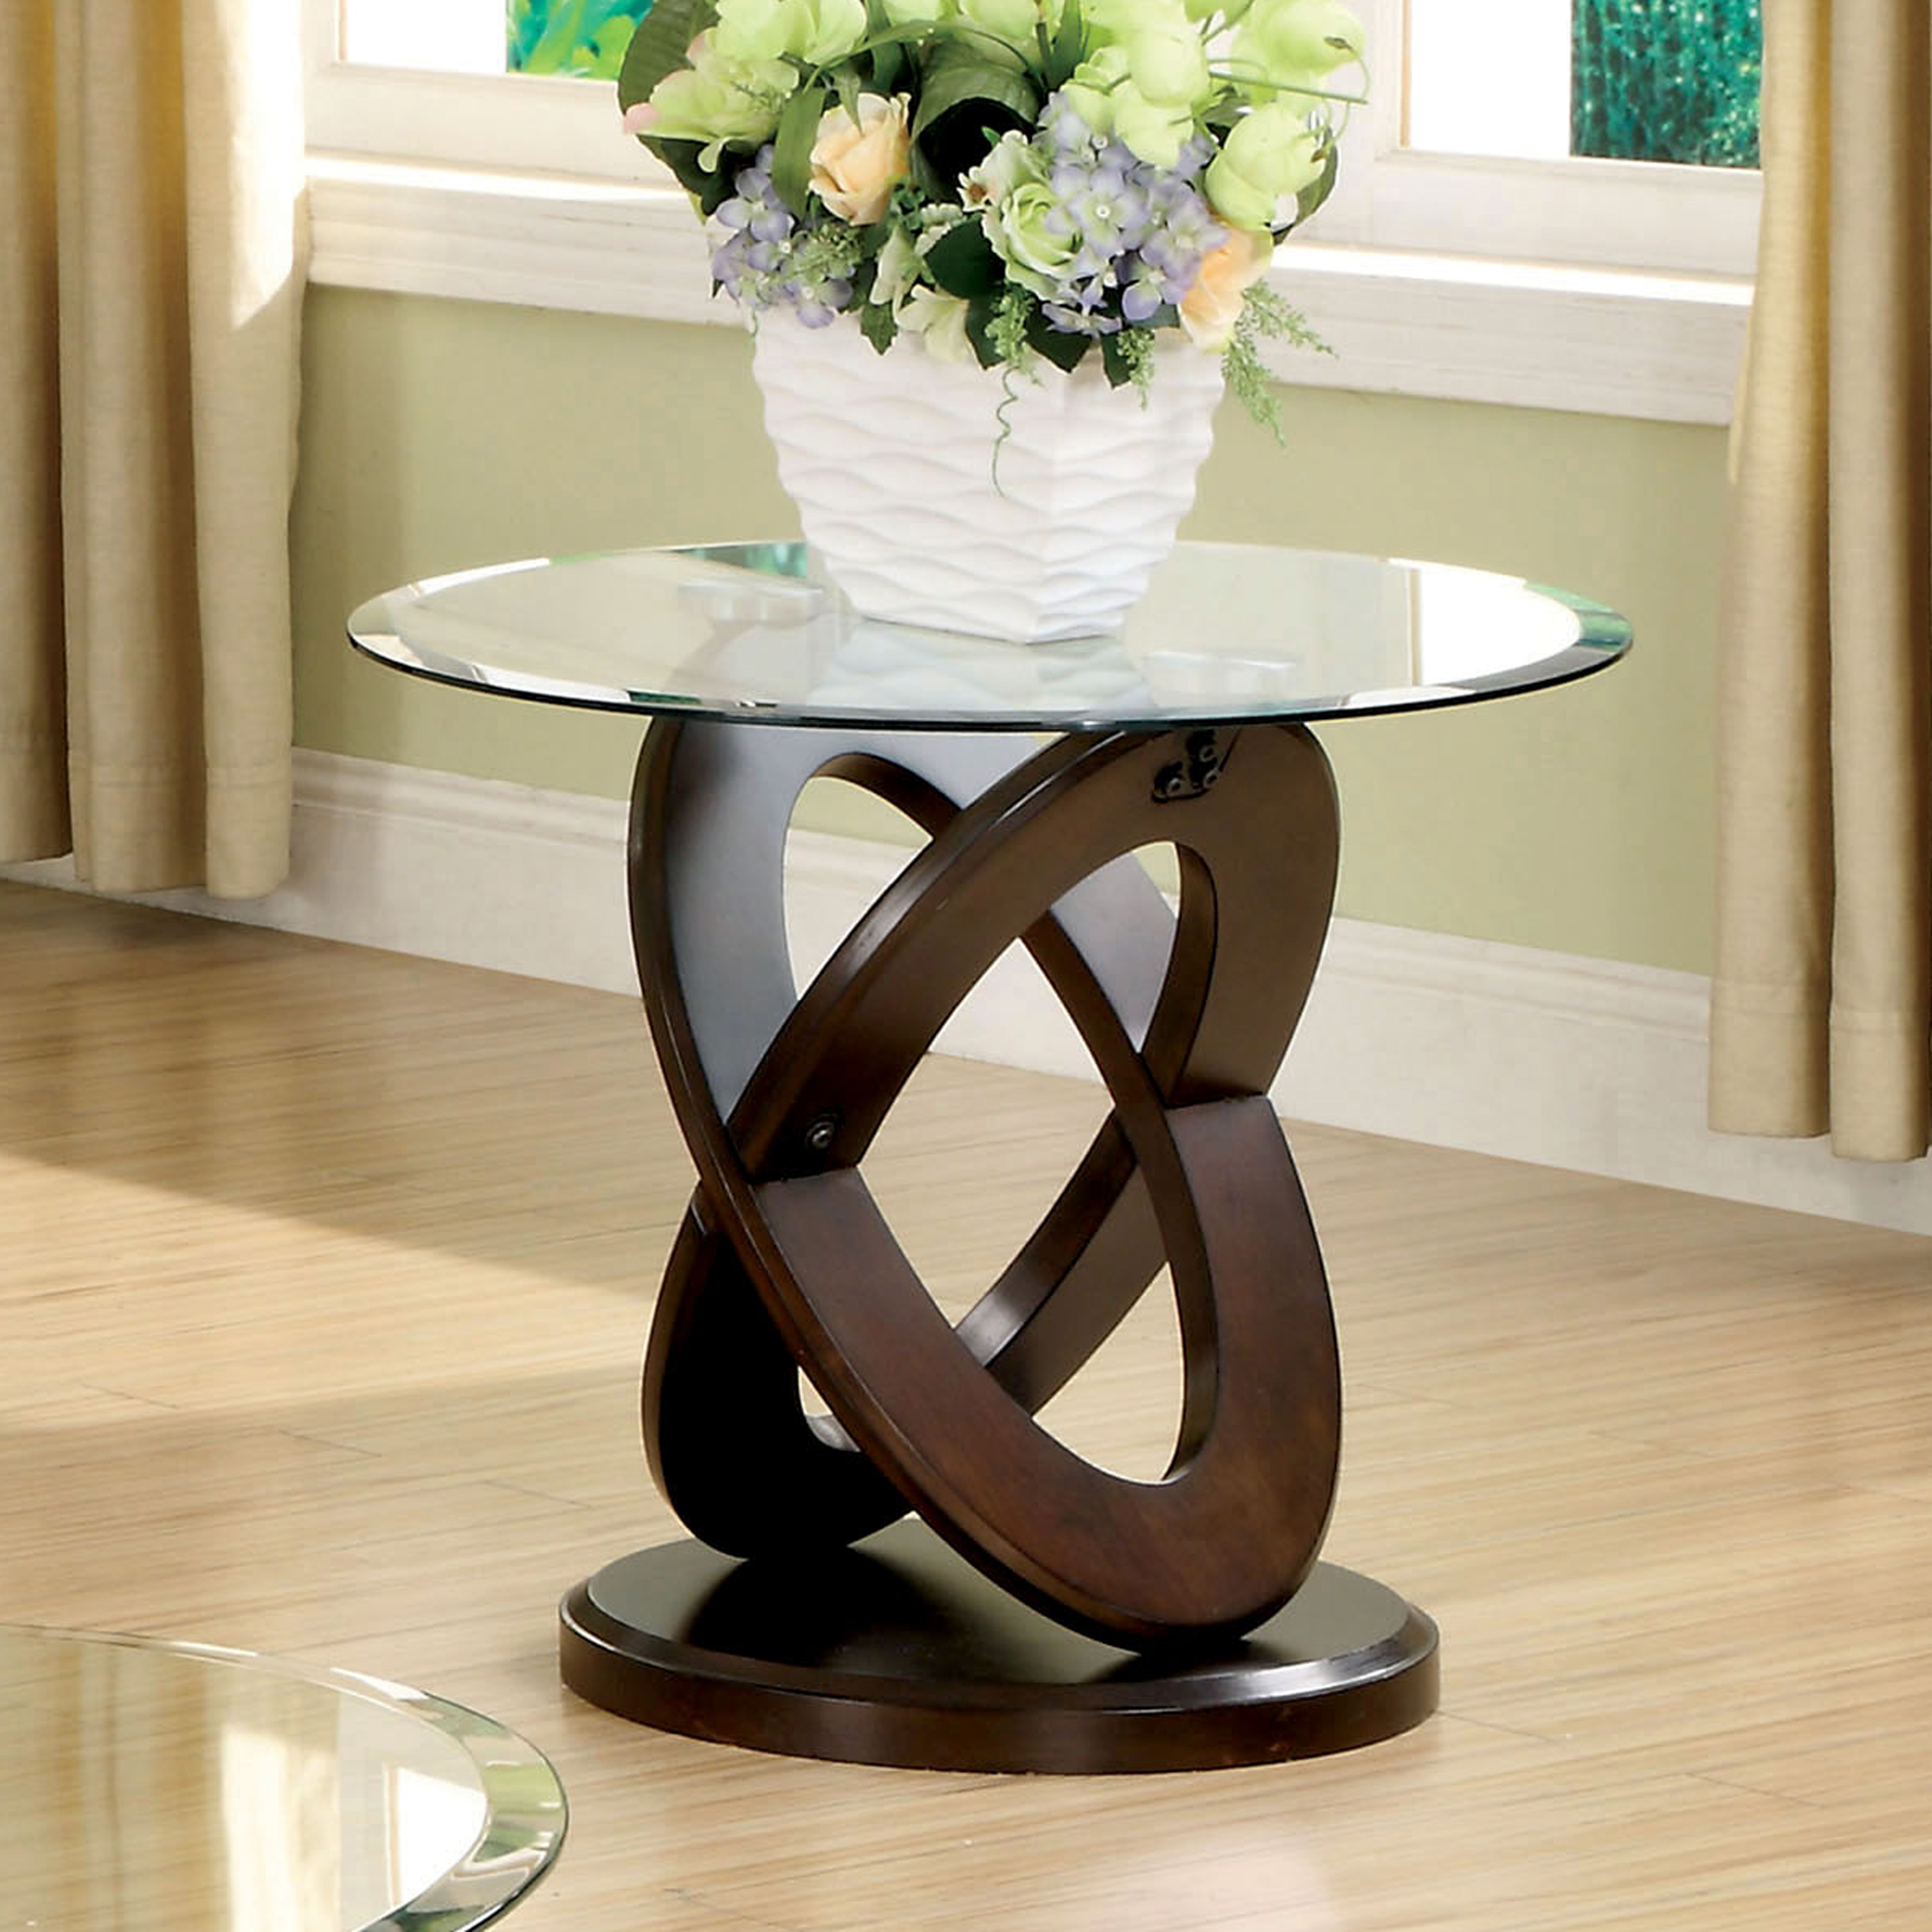 Furniture of America Tayah Contemporary Glass End Table, Dark Walnut